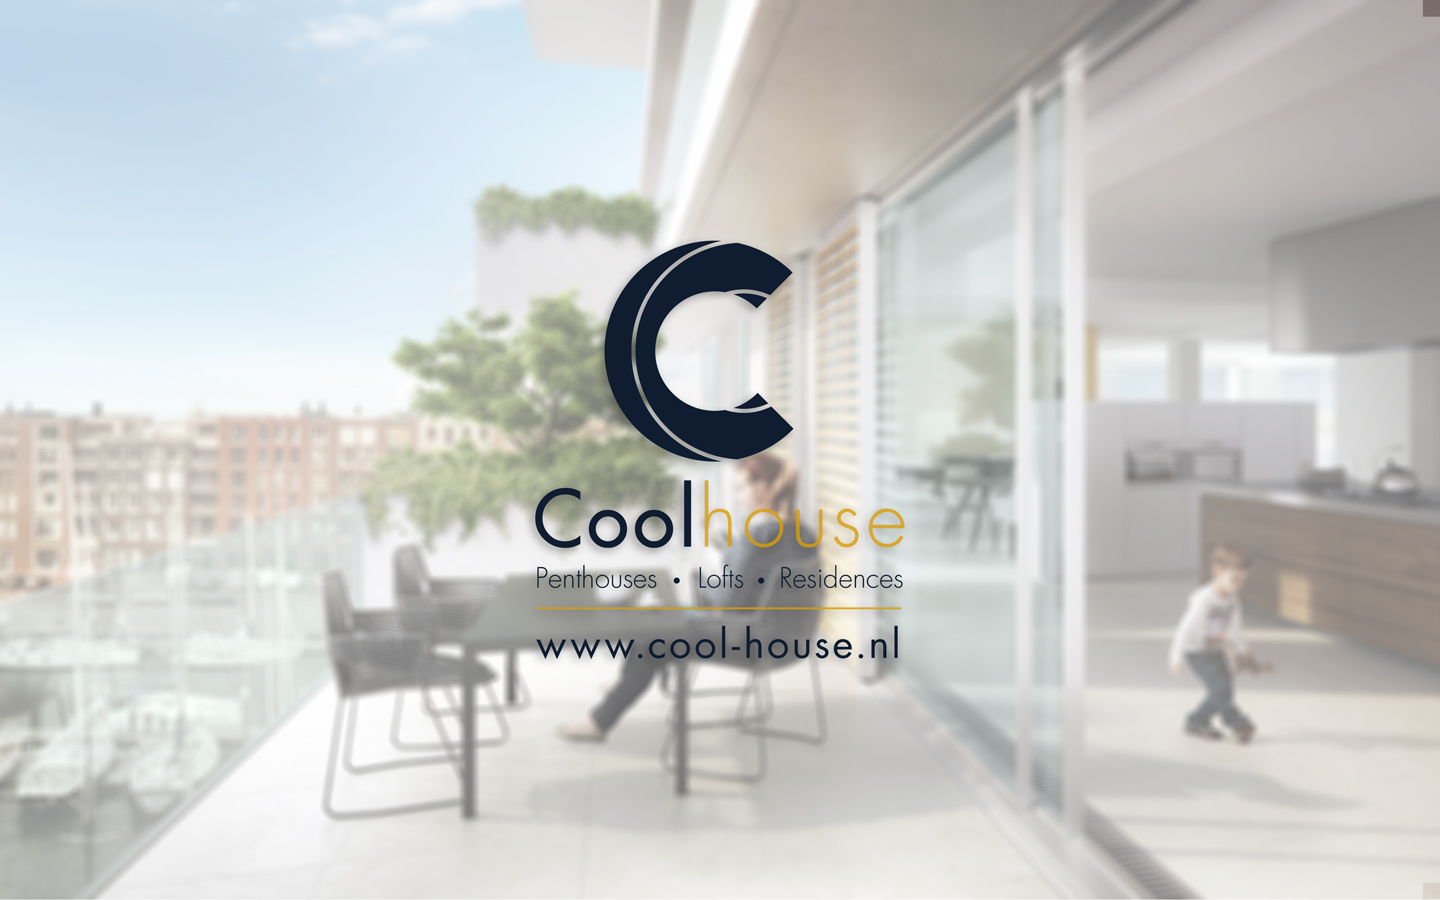 image of the CoolHouse